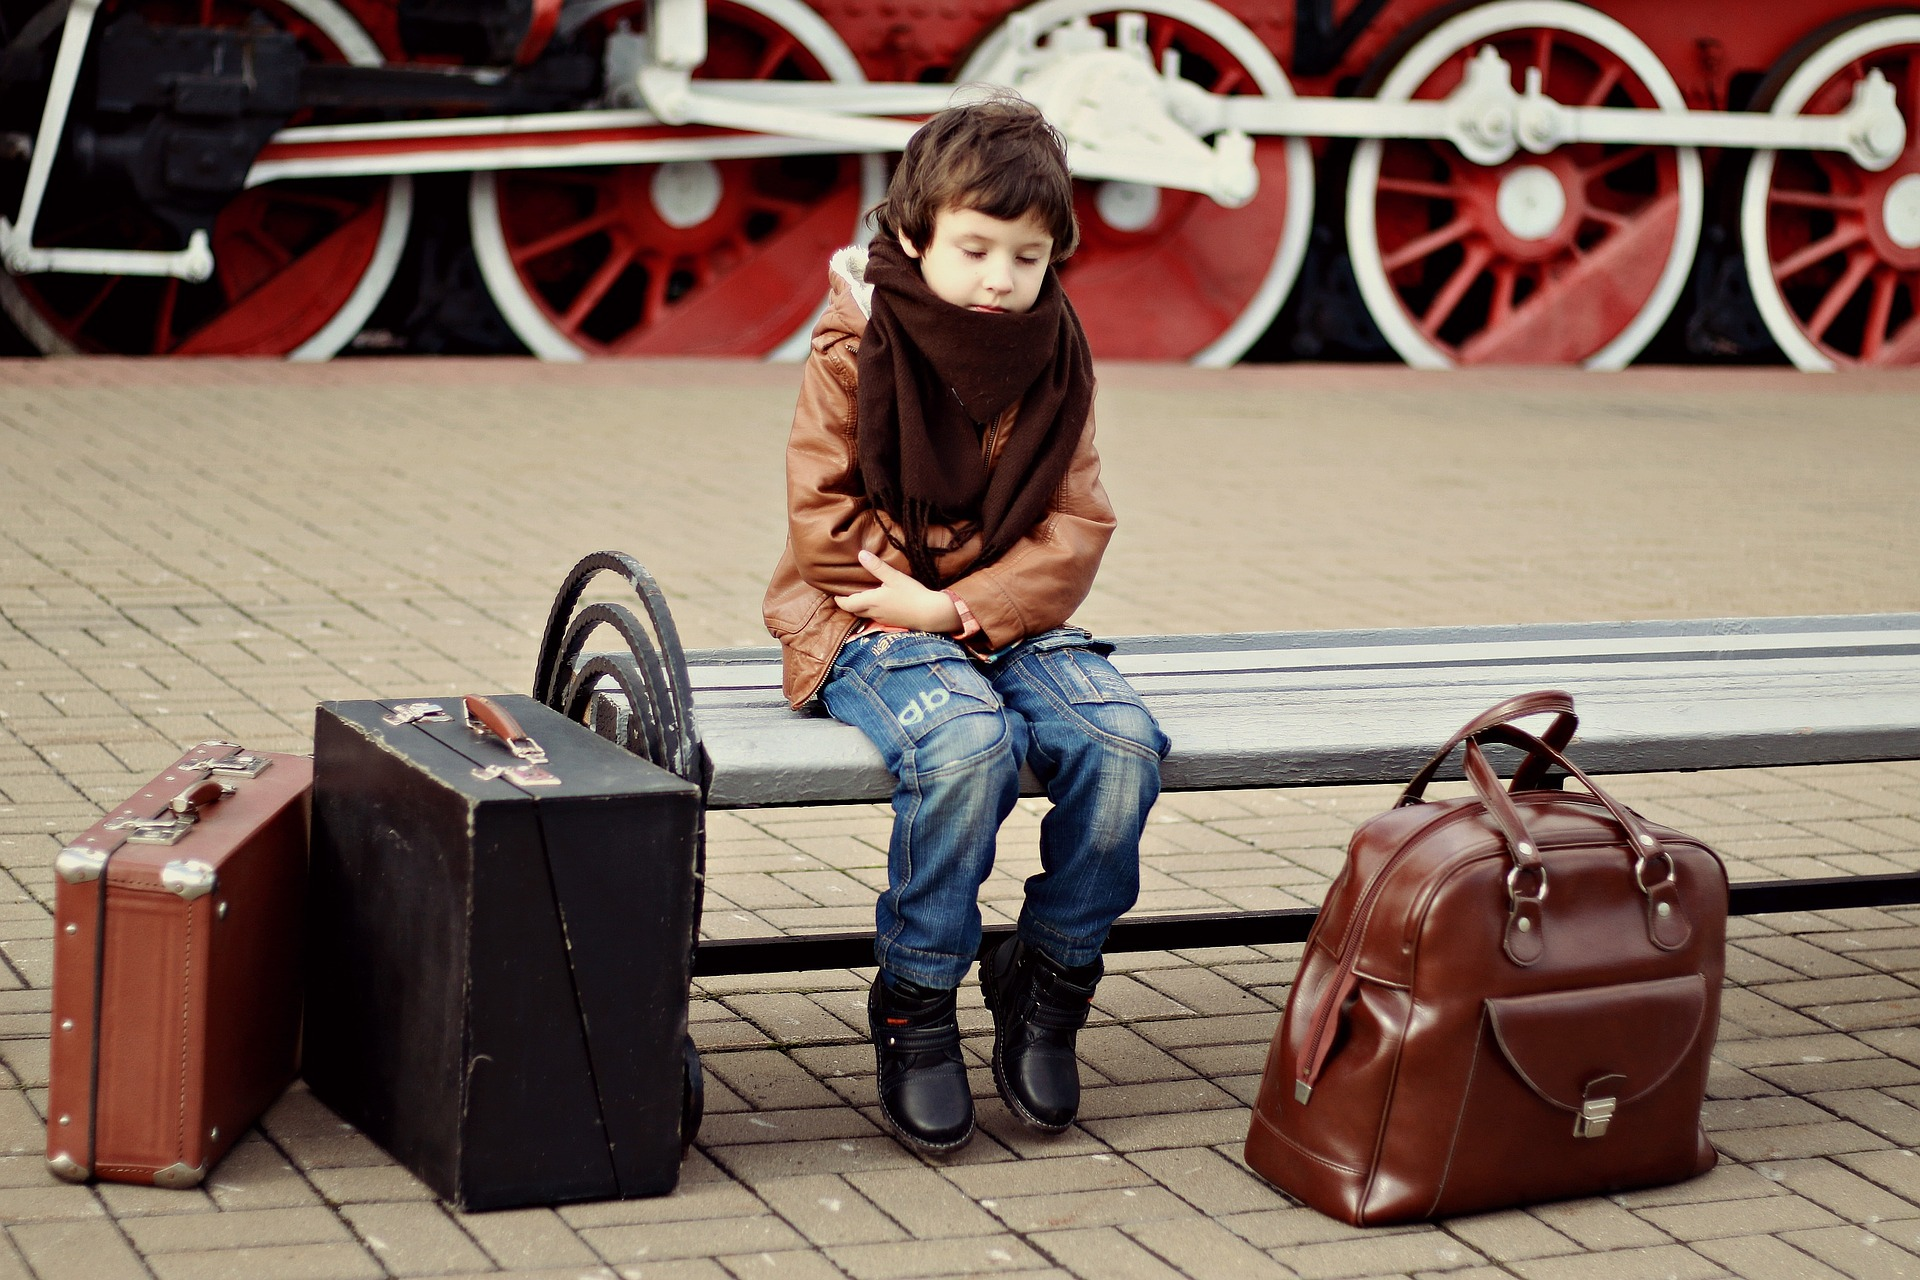 young child on train station bench near suitcases